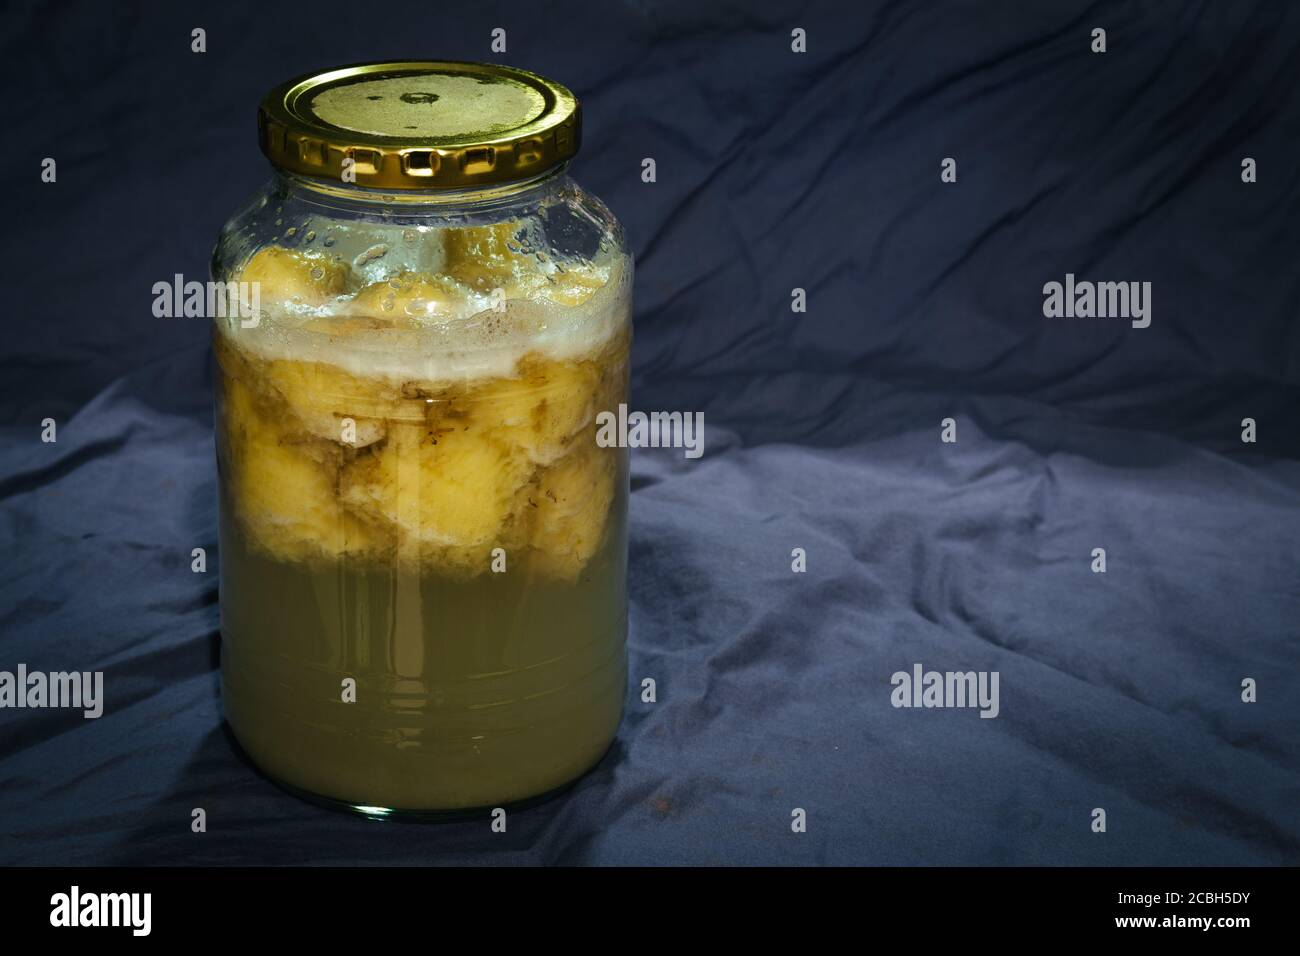 Homemade banana fruit wild natural yeast water with bubbles, active and fermenting in a glass jar Stock Photo